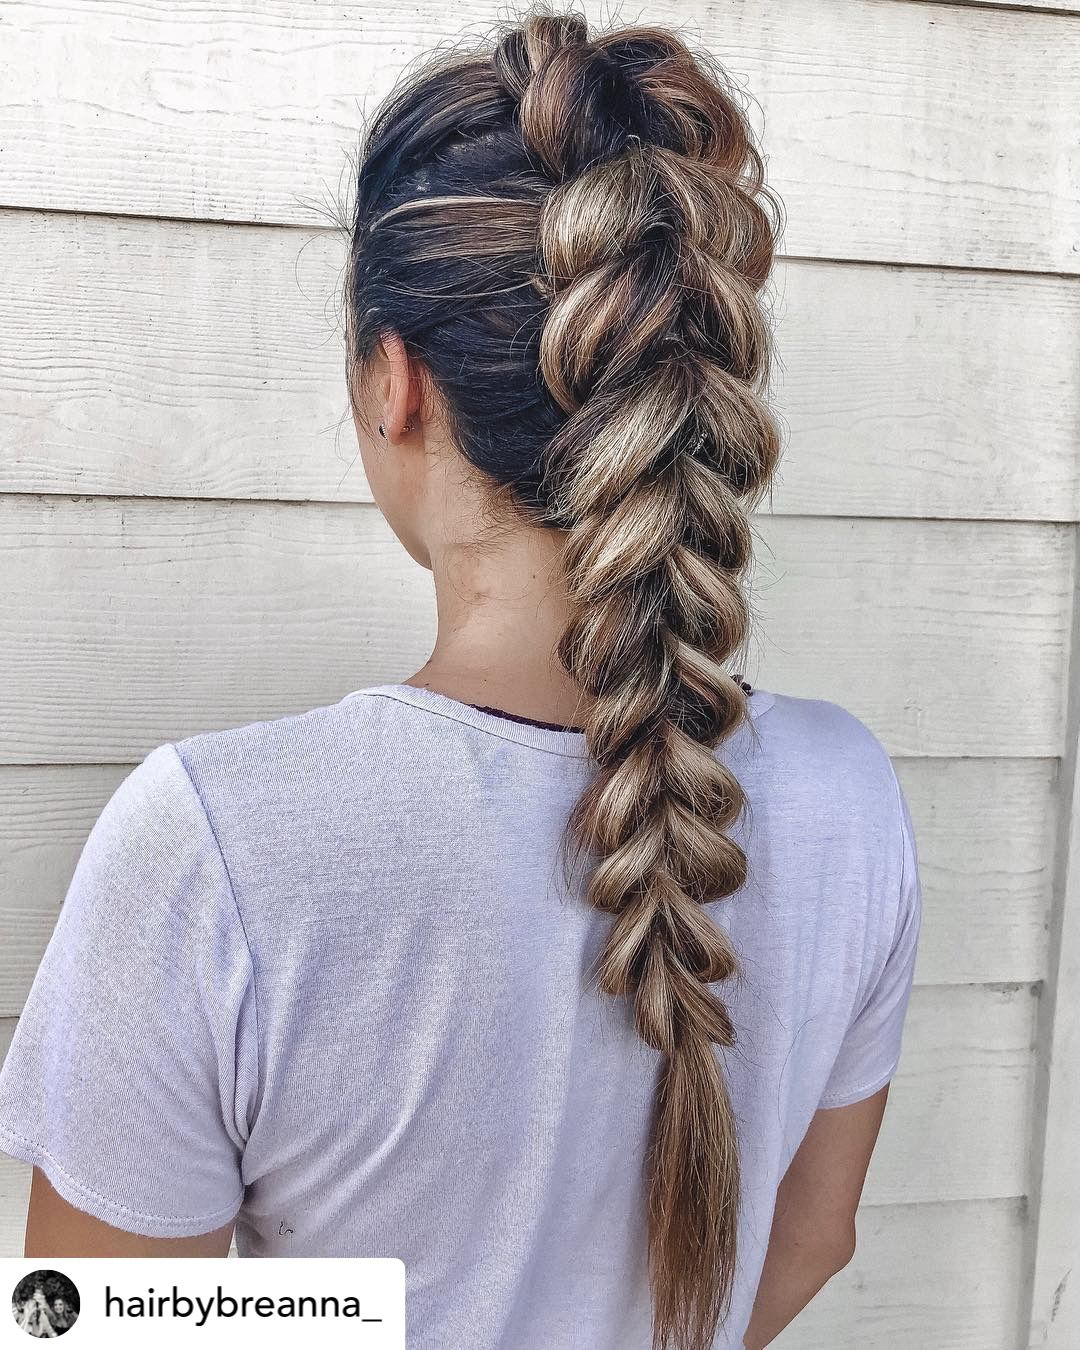 5 Fundamental Hair Tips For Camping (+9 Easy Hairstyle Ideas)